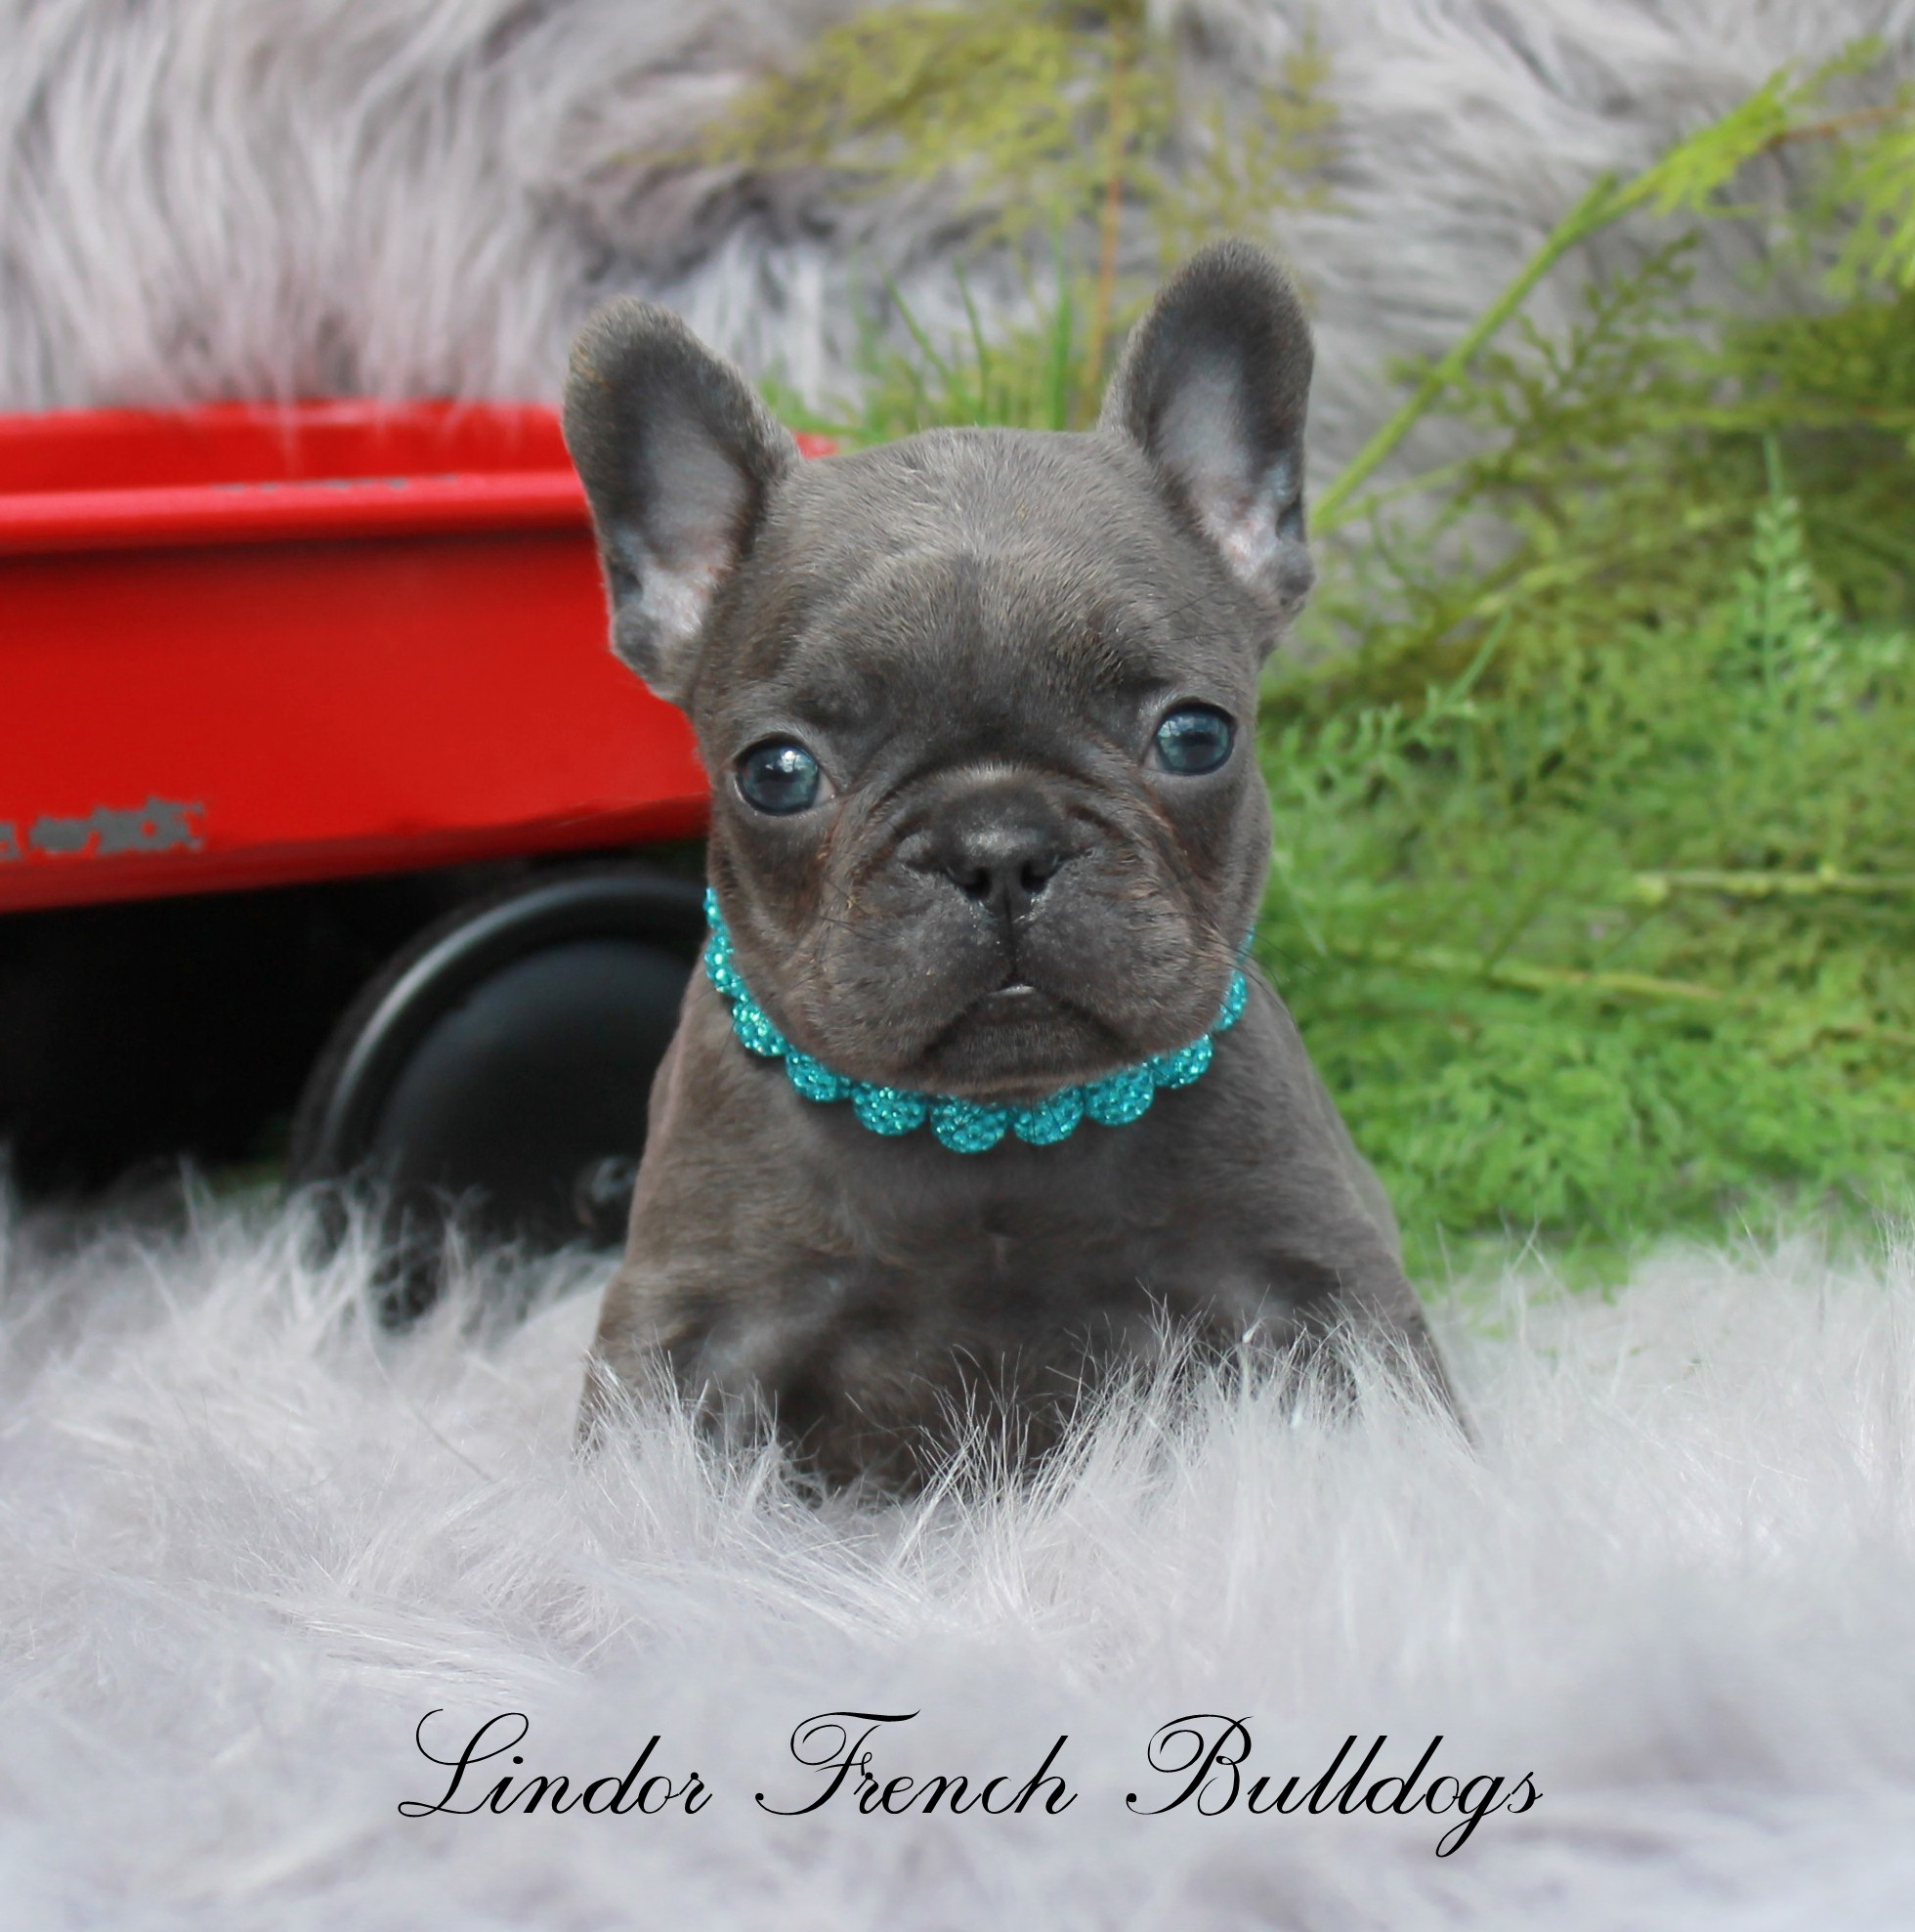 solid blue french bulldog puppy sitting on a fuzzy rug wearing a blue collar